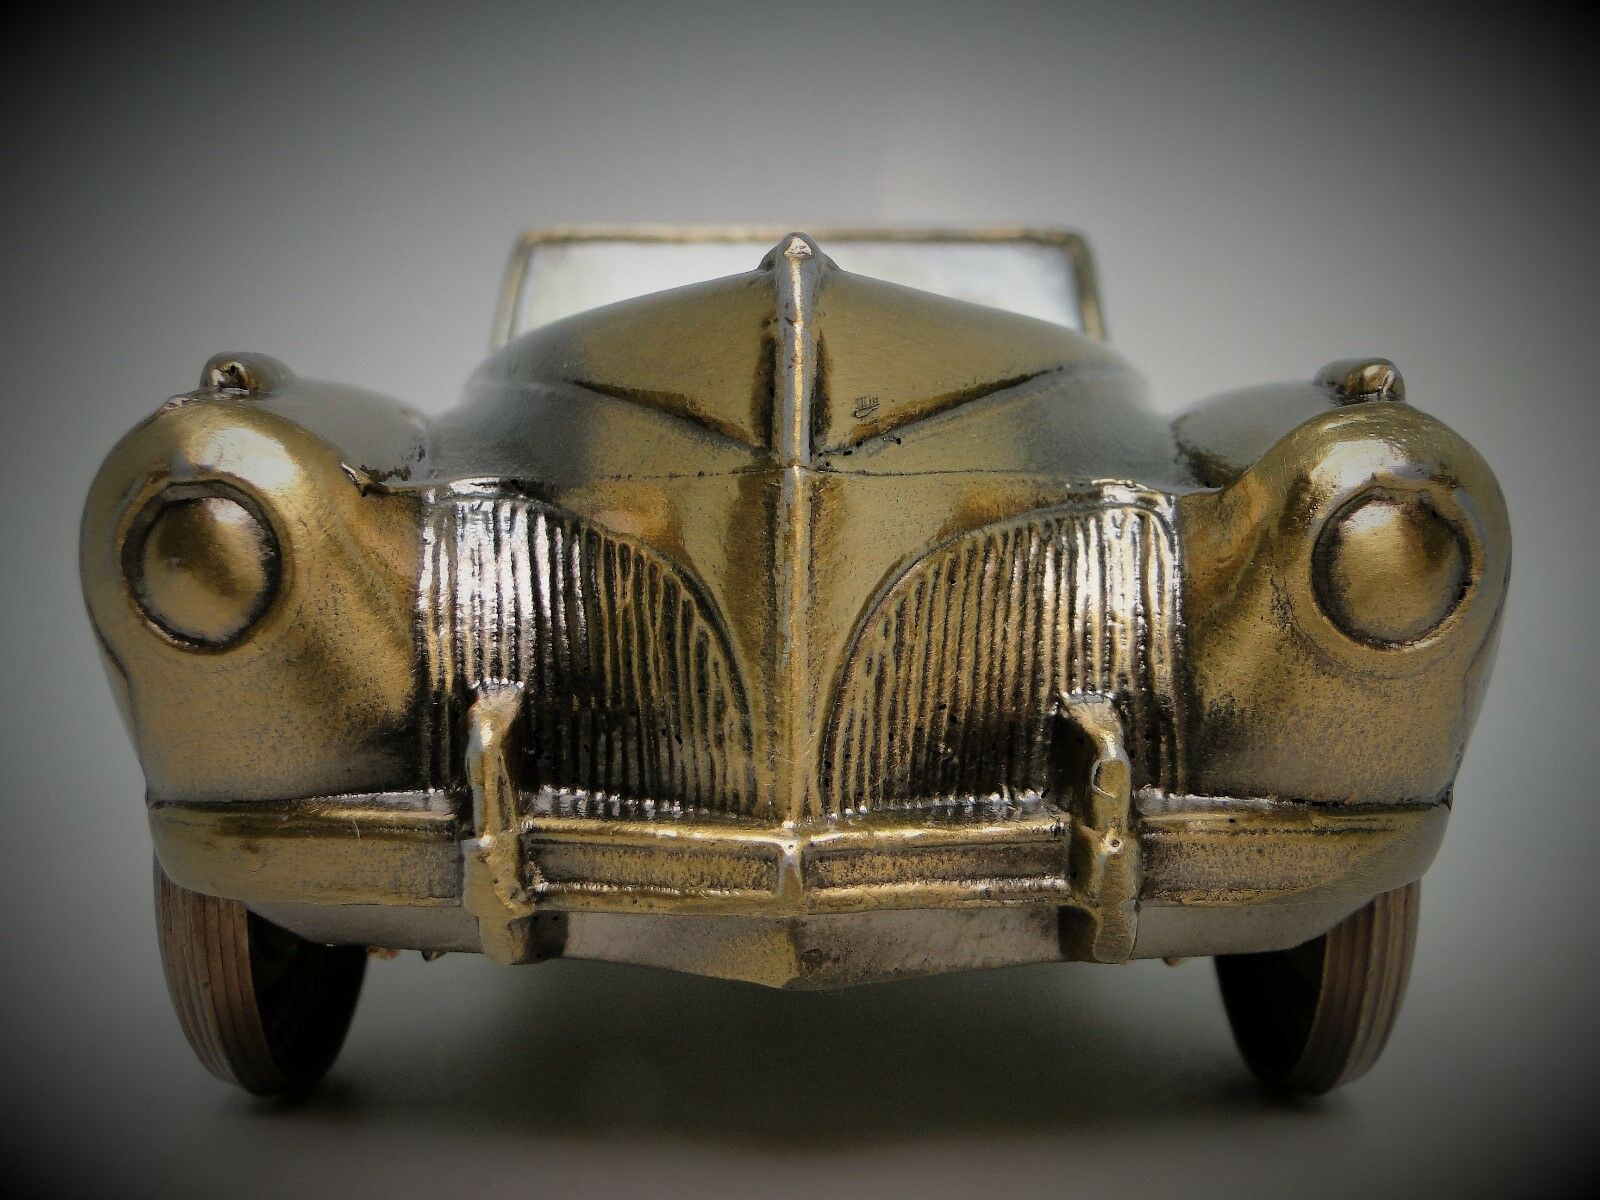 A 1940s Ford Lincoln Model Antique Vintage T Car 18 Metal 12 Bronze 43 GT 1 24